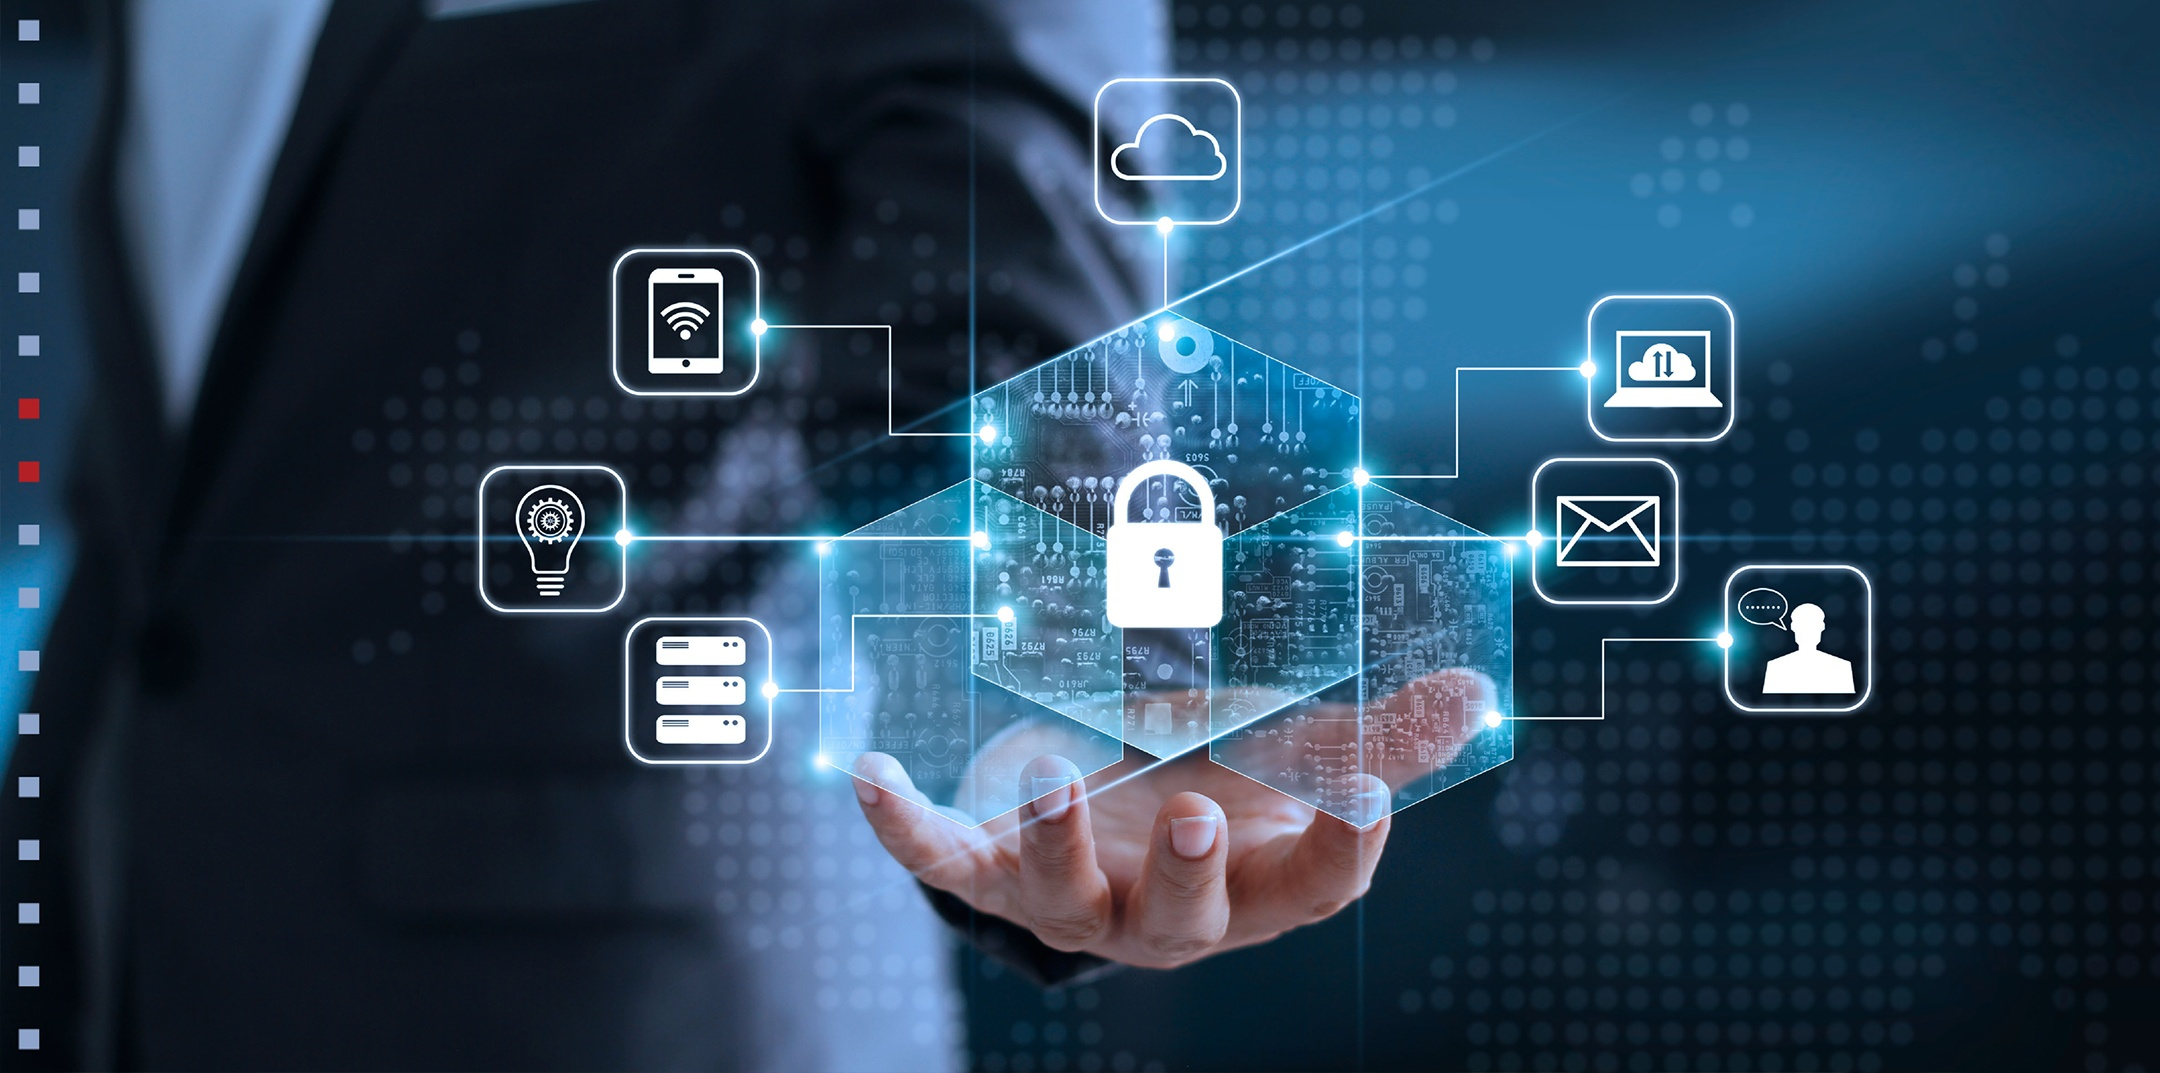 Approaching SAP HCM data in the shadow of GDPR